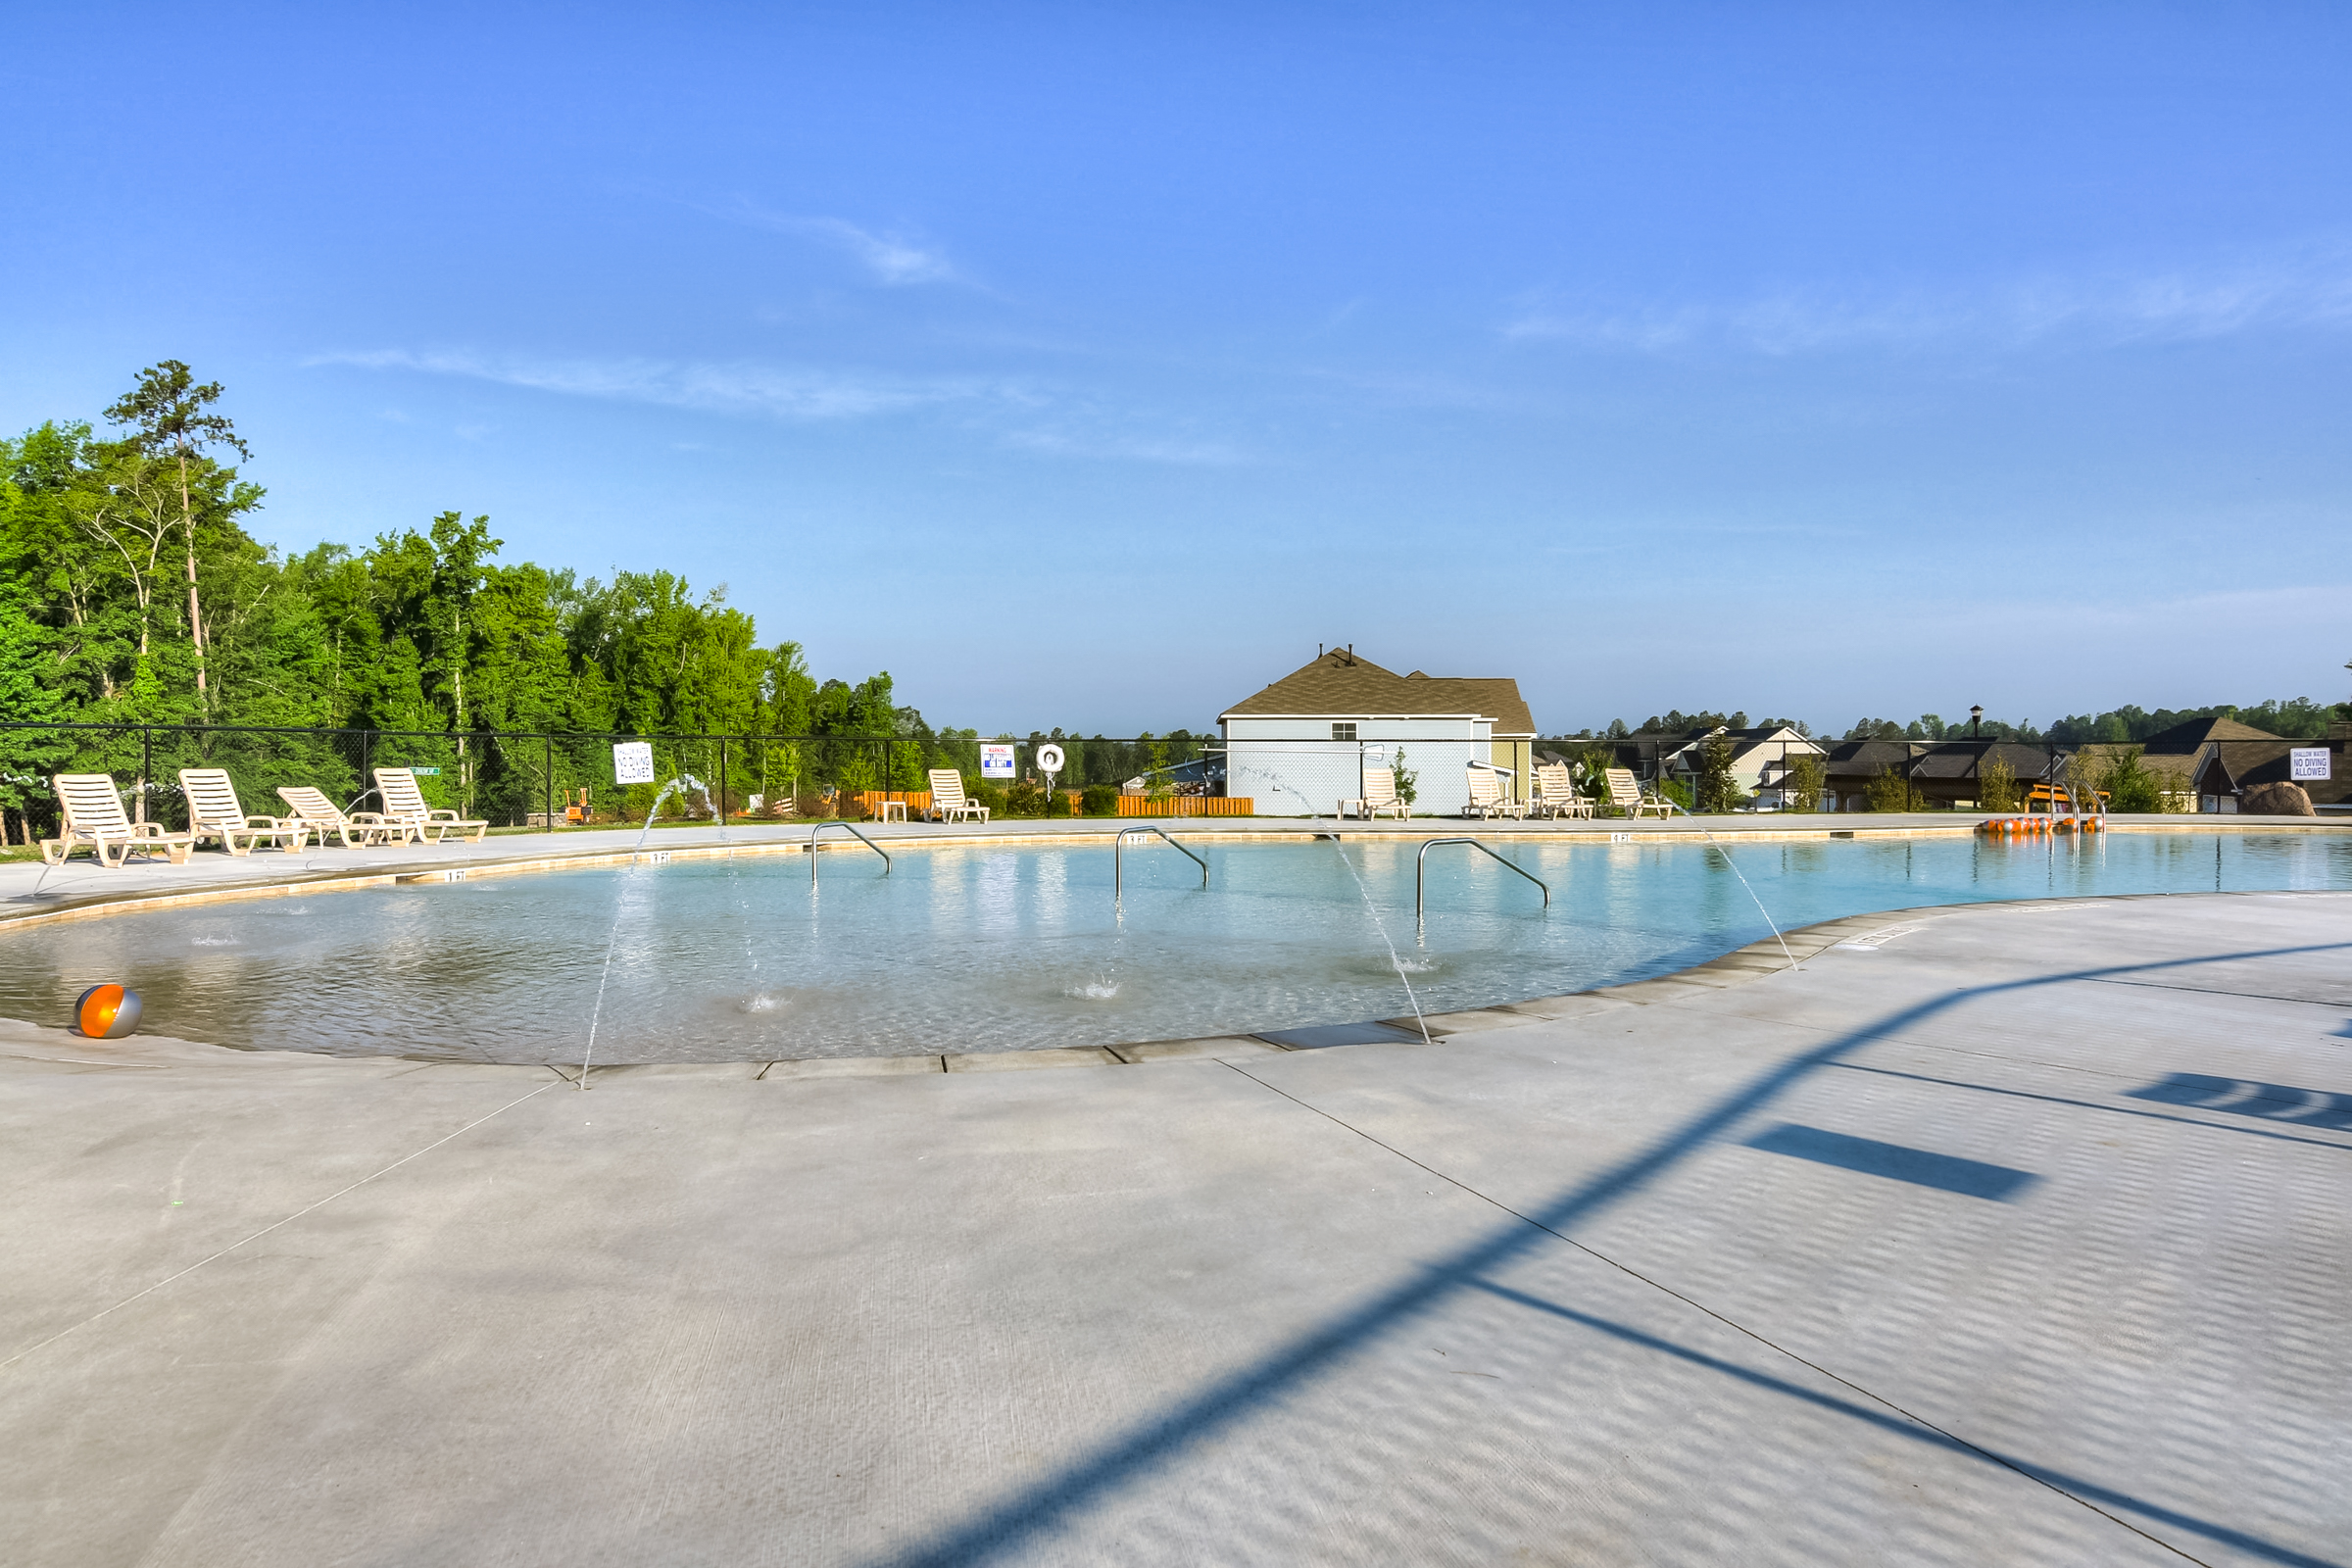 An image of the pool with water fountains at Kelarie.